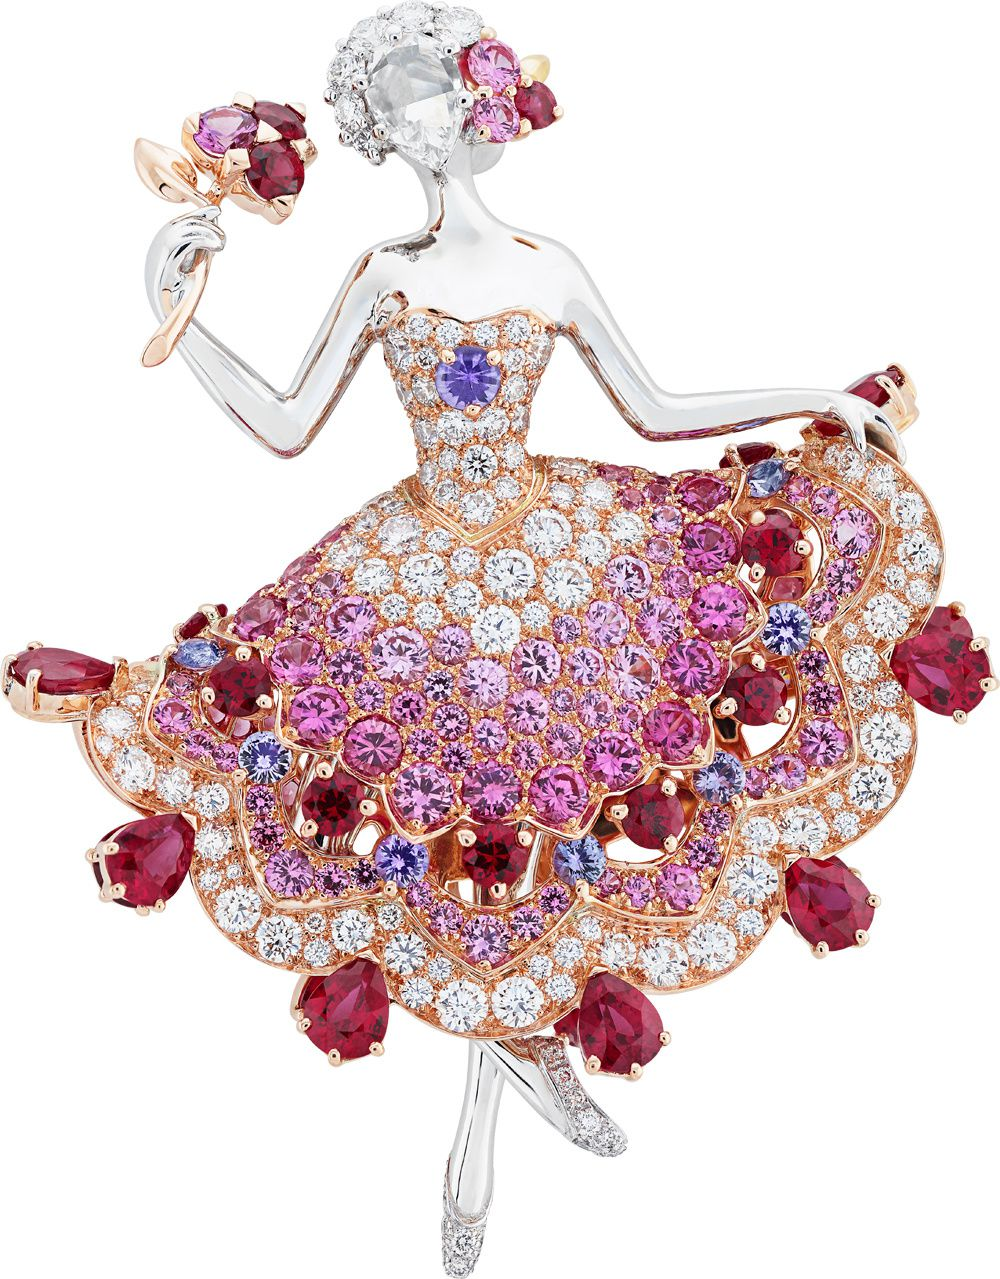 Van Cleef & Arpels, Ballerina Iolanta clip Represented by a rose-cut diamond the ballerina's face is enhanced by a hair ornament set with a ruby, diamonds and pink sapphires. Round and pear-shaped rubies along with a mauve and pink sapphire gradation adorn the pink gold tutu Paris, 2015 © Van Cleef & Arpels